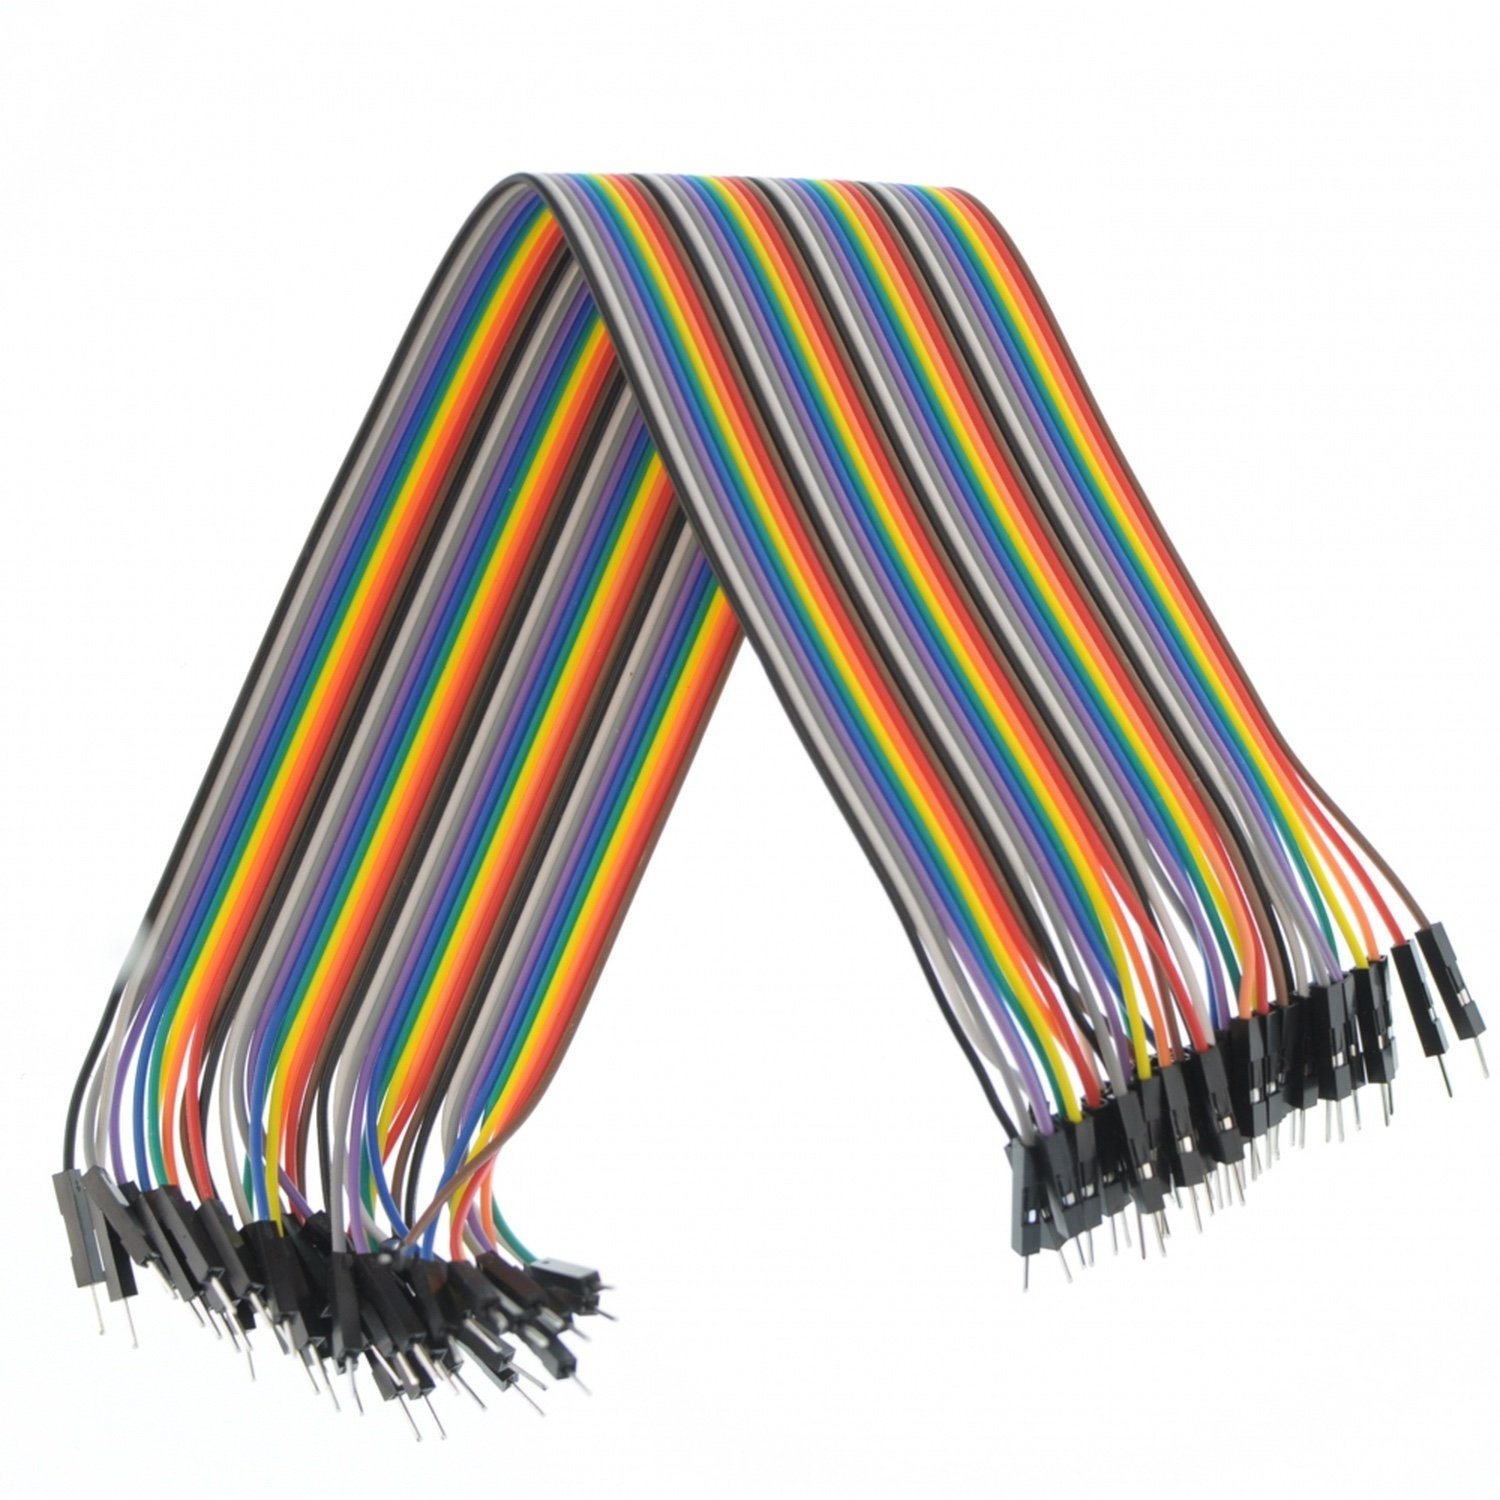 цена на Male cord 40pcs Dupont Jumper Wire 30cm Breadboard for Arduino [Arduino Projects]